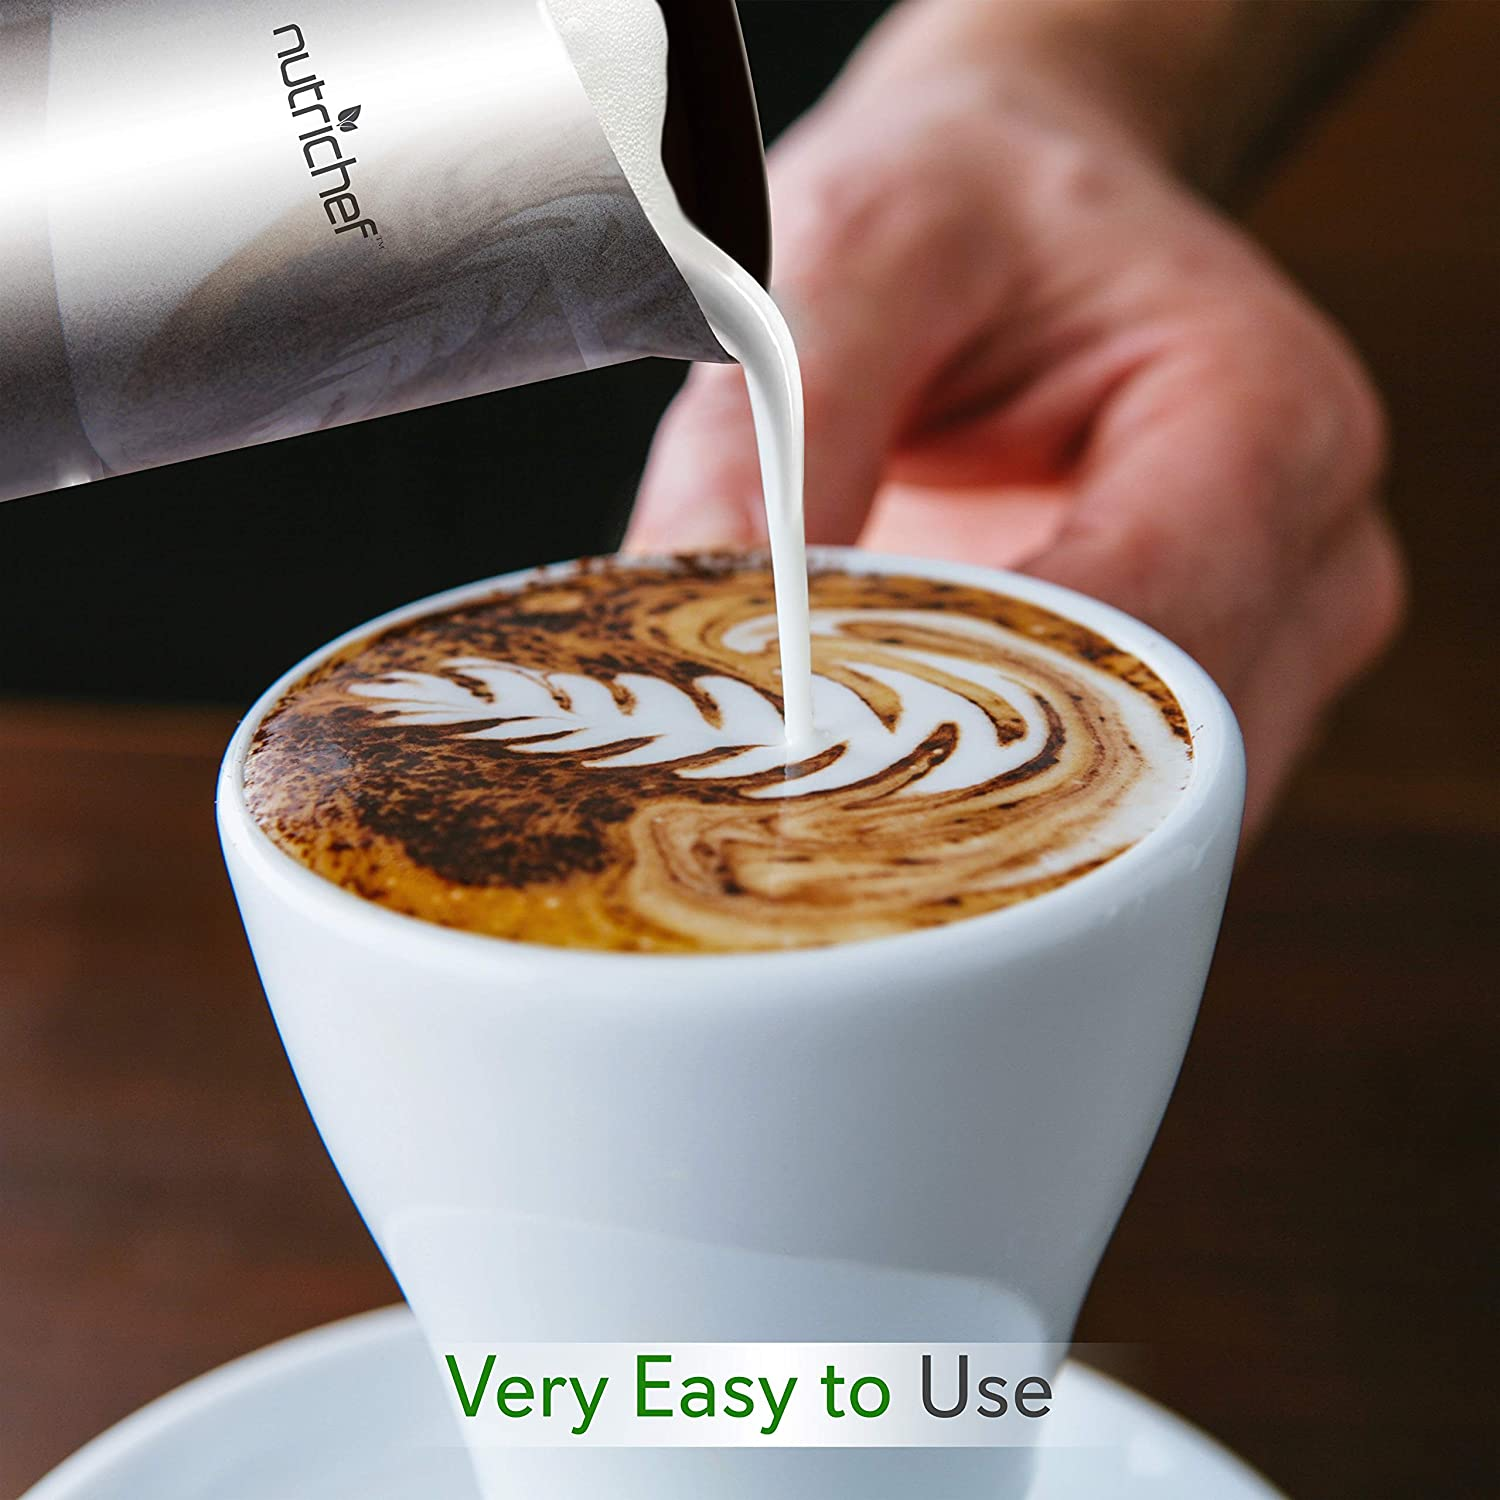 Electric Milk Warmer and Frother Silver Stainless Steel Froth Foam Maker for Latte Cappuccino Coffee Drink 2-in-1 Automatic Hot or Cold Milk Steamer Heater Foamer Blender NutriChef PKNESPRESO65